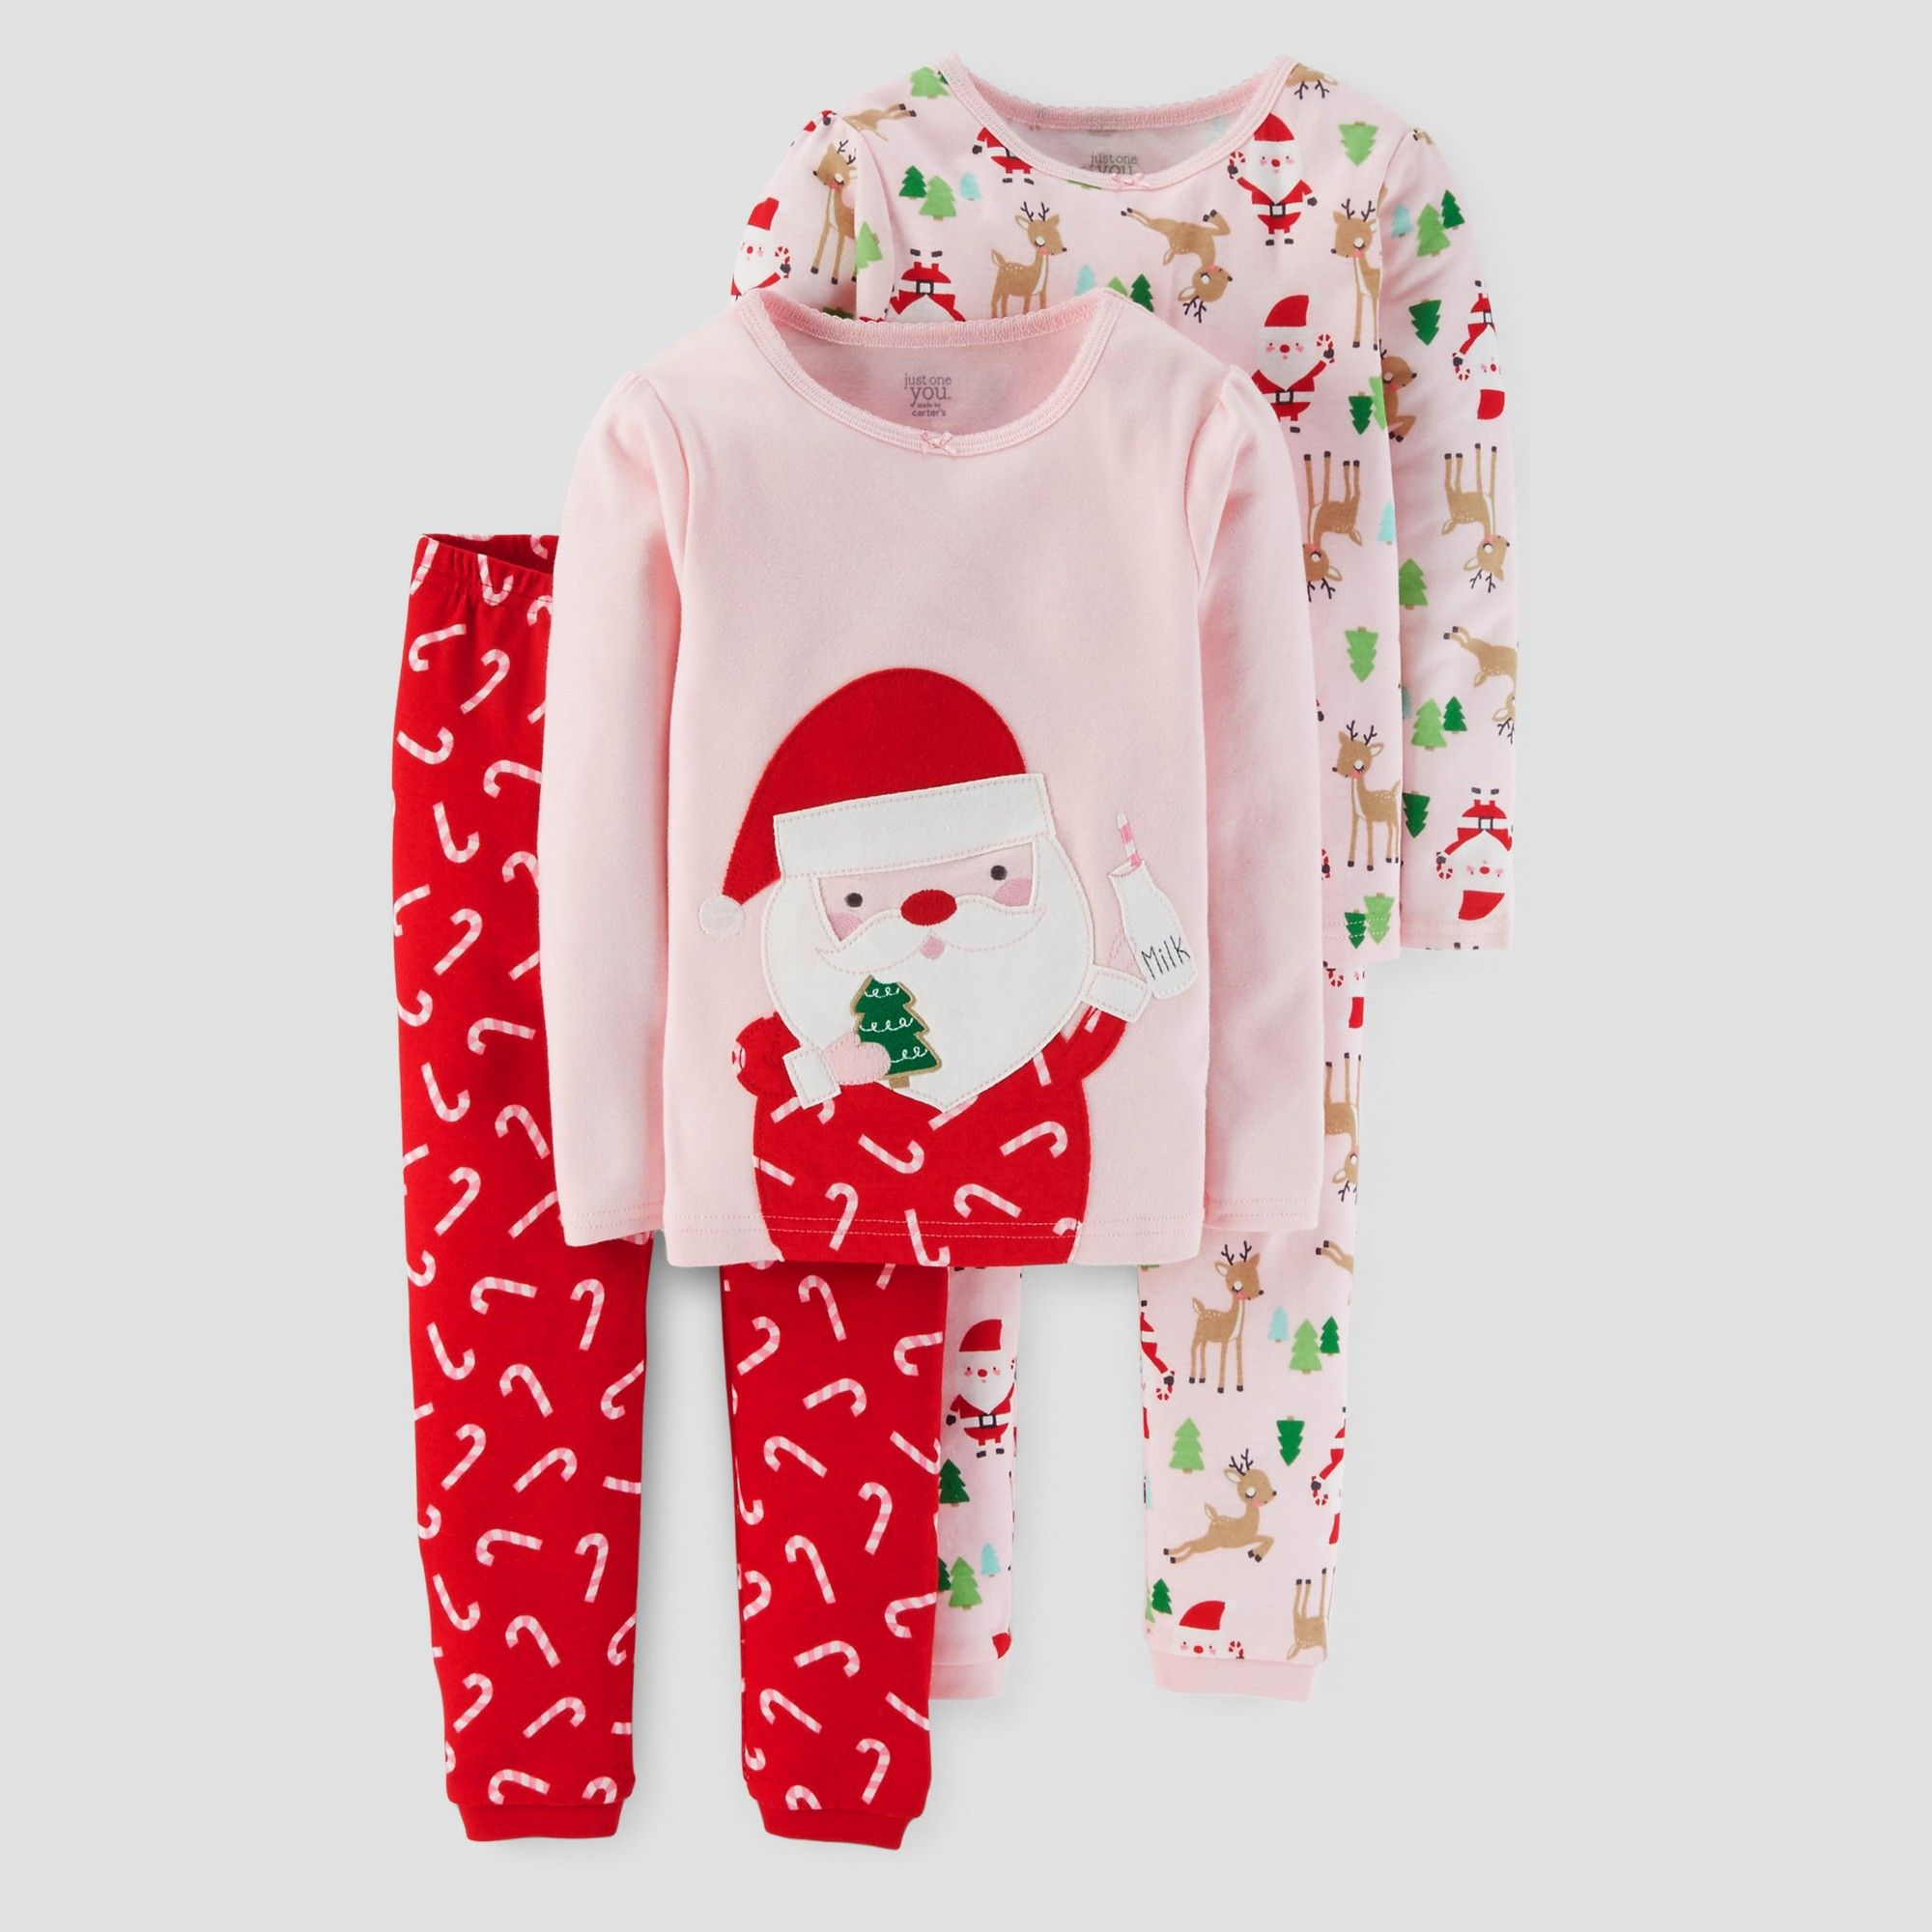 f75db3b619 Toddler Girls  4pc Long Sleeve Santa Pajama Set - Just One You Made by  Carter s Pink 5T